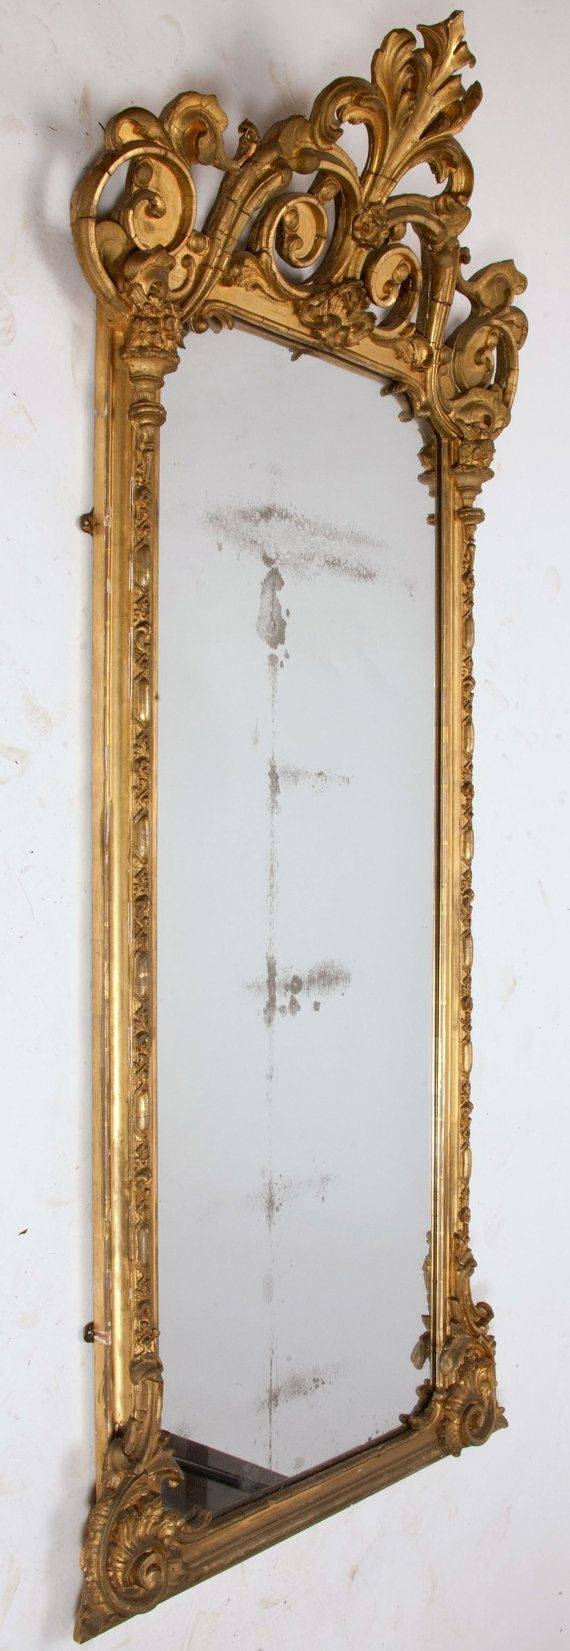 Best 25+ French Mirror Ideas On Pinterest | Antique Mirrors regarding Ornate French Mirrors (Image 10 of 25)